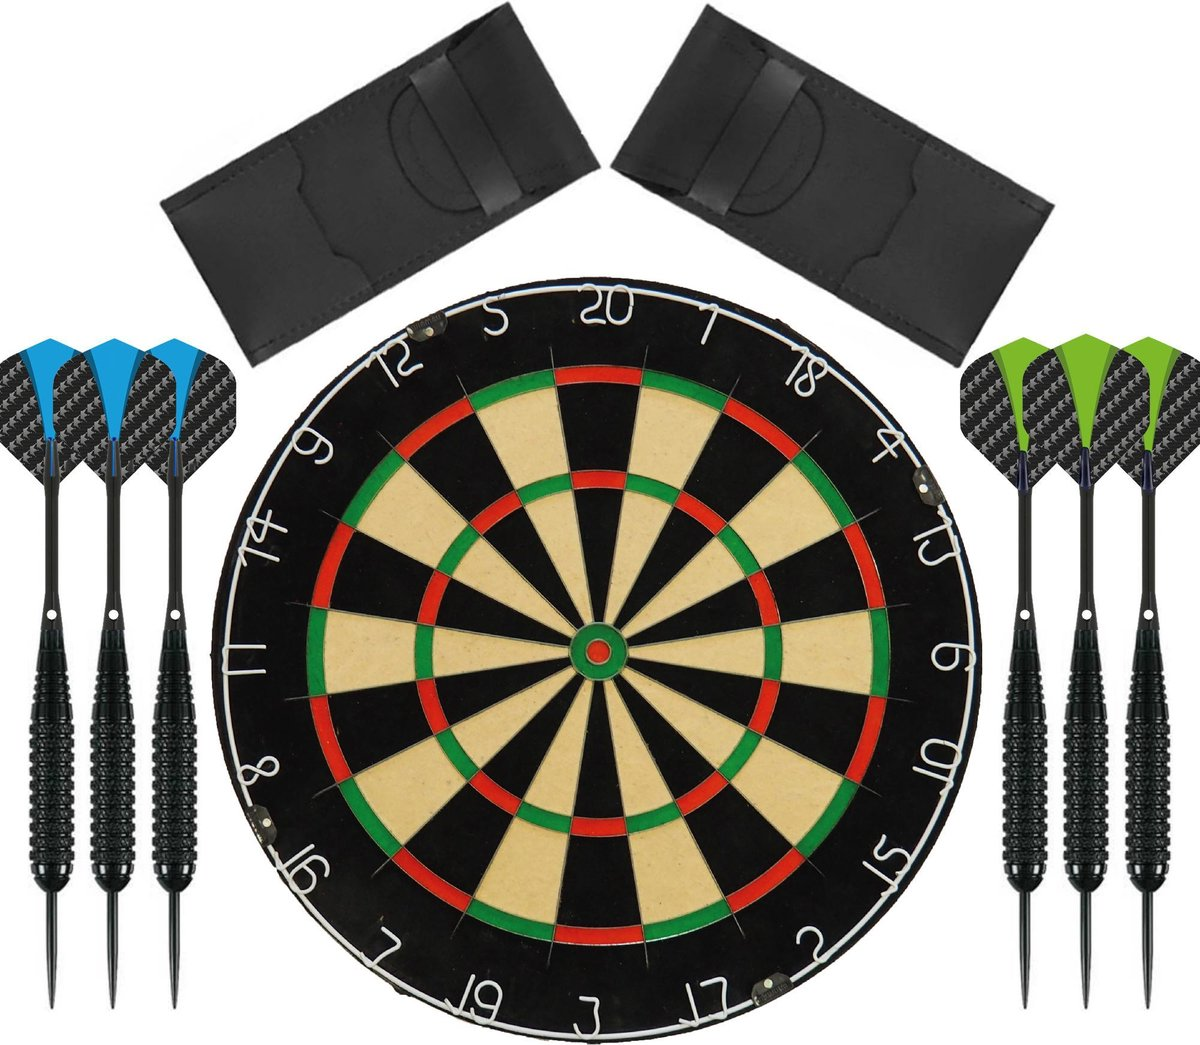 Dragon Darts - complete black 180 dartset - dartbord - plus 2 sets complete - dartpijlen - dartset - darts